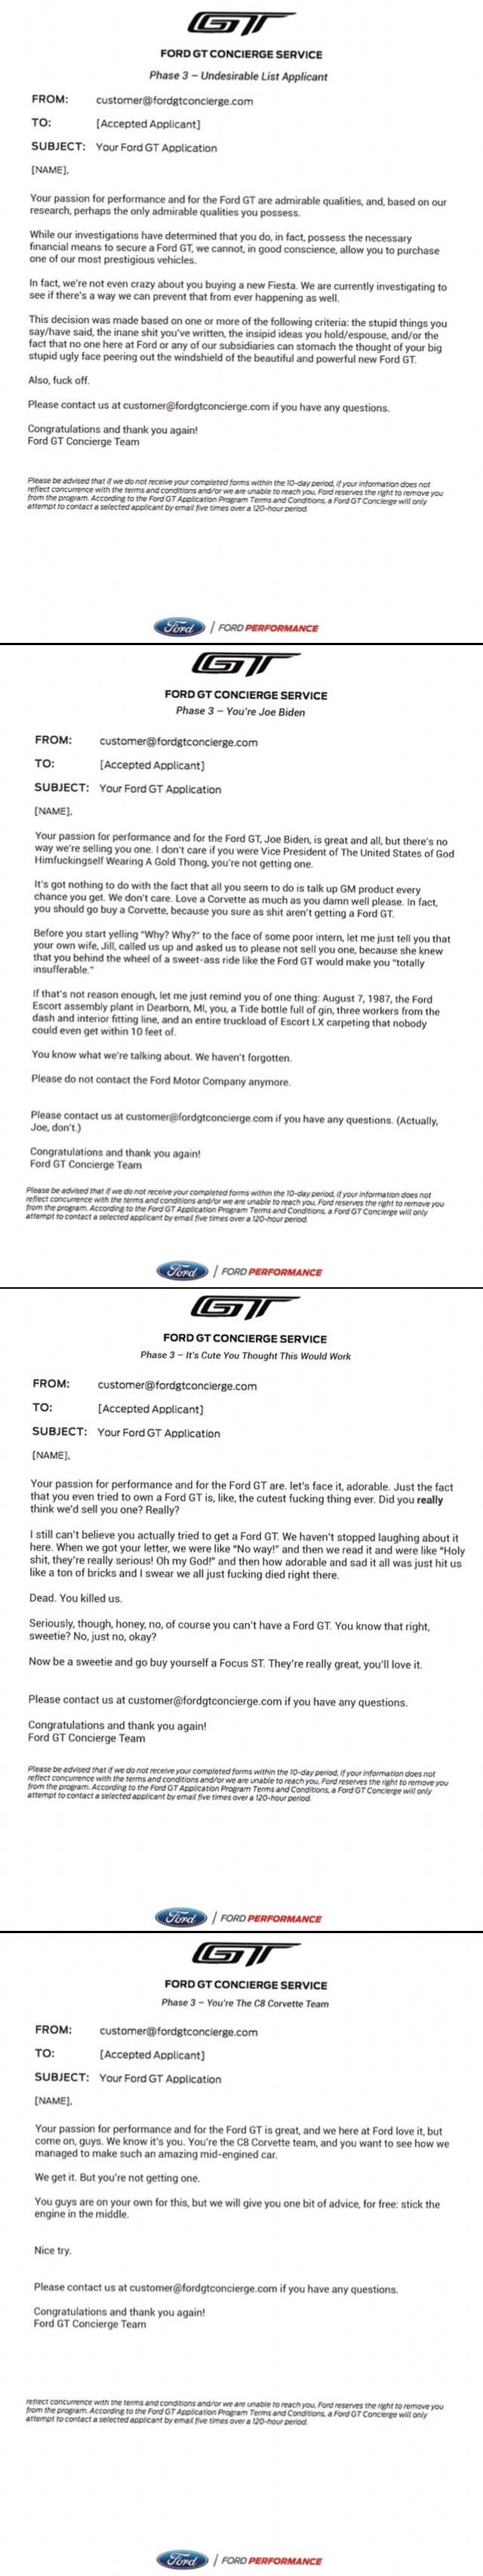 Ford If Jalopnik Wrote The Ford Gt Rejection Letters Memes